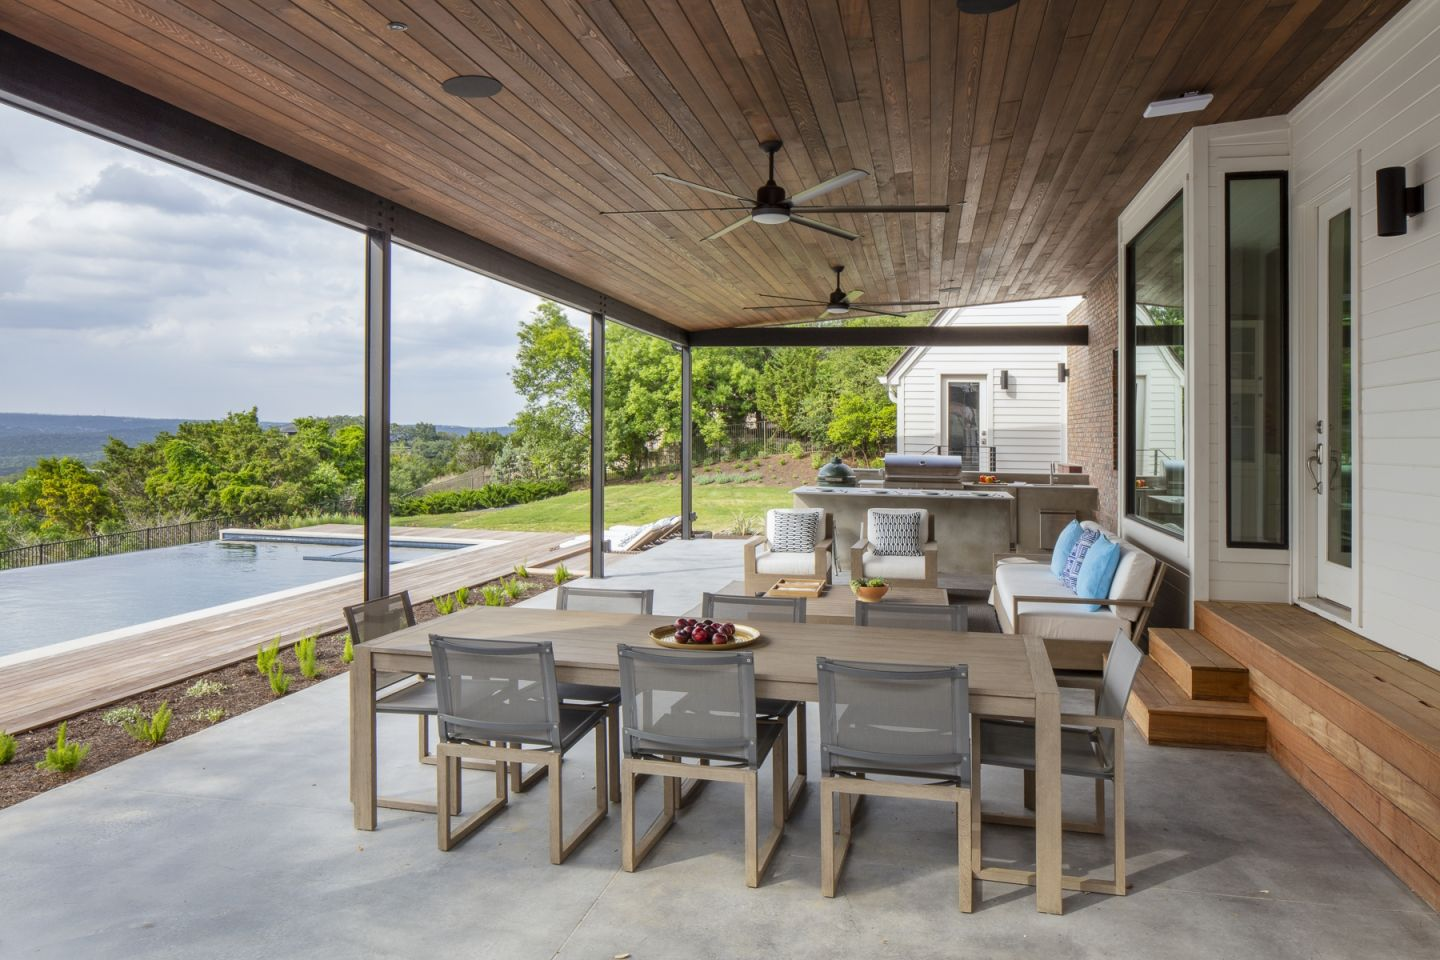 Wooden Home Porch with Natural Views